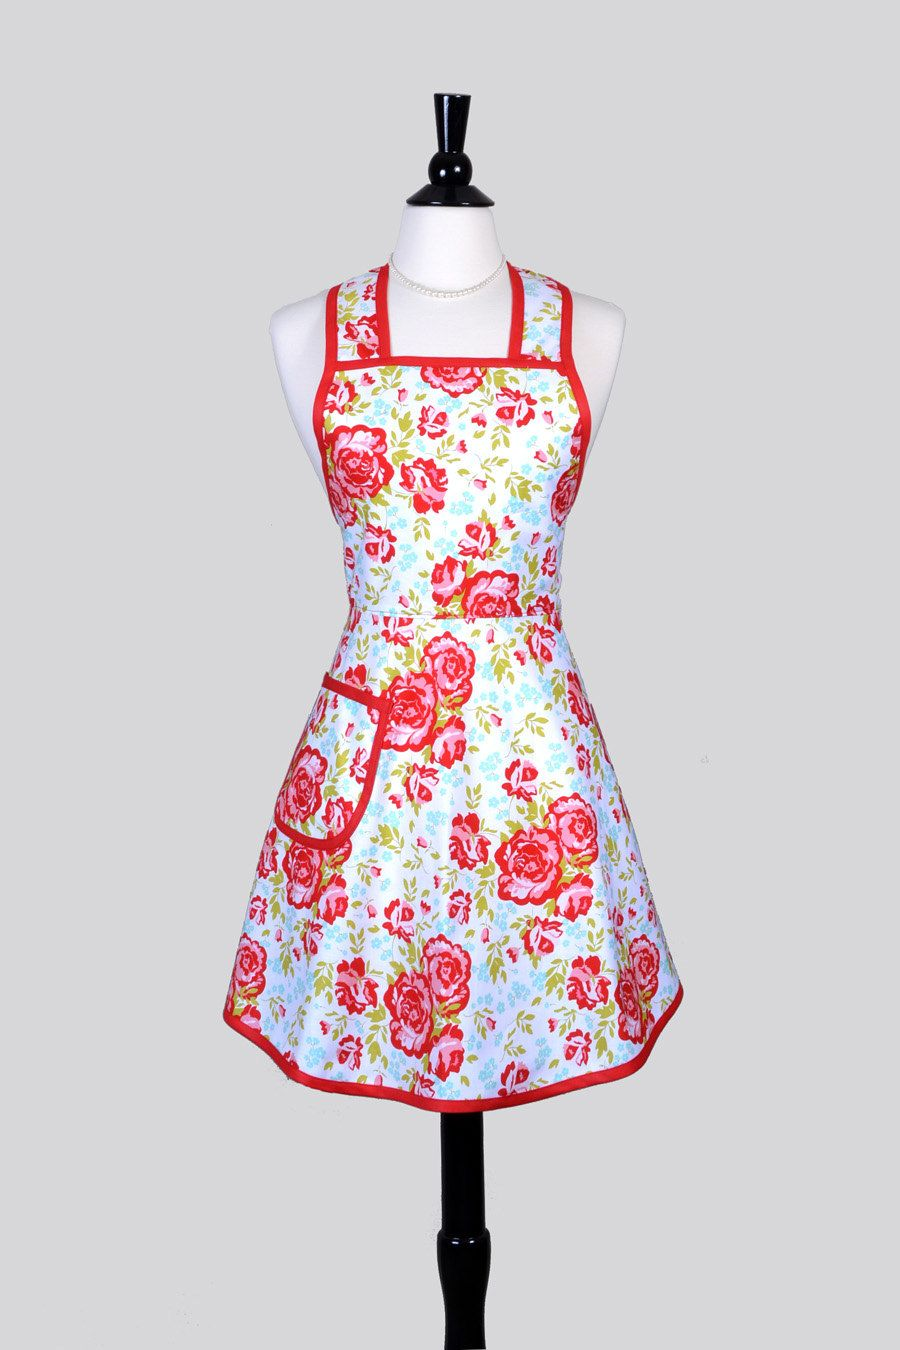 50s Style Retro Apron - Red and Turquoise Floral Womans Vintage ...